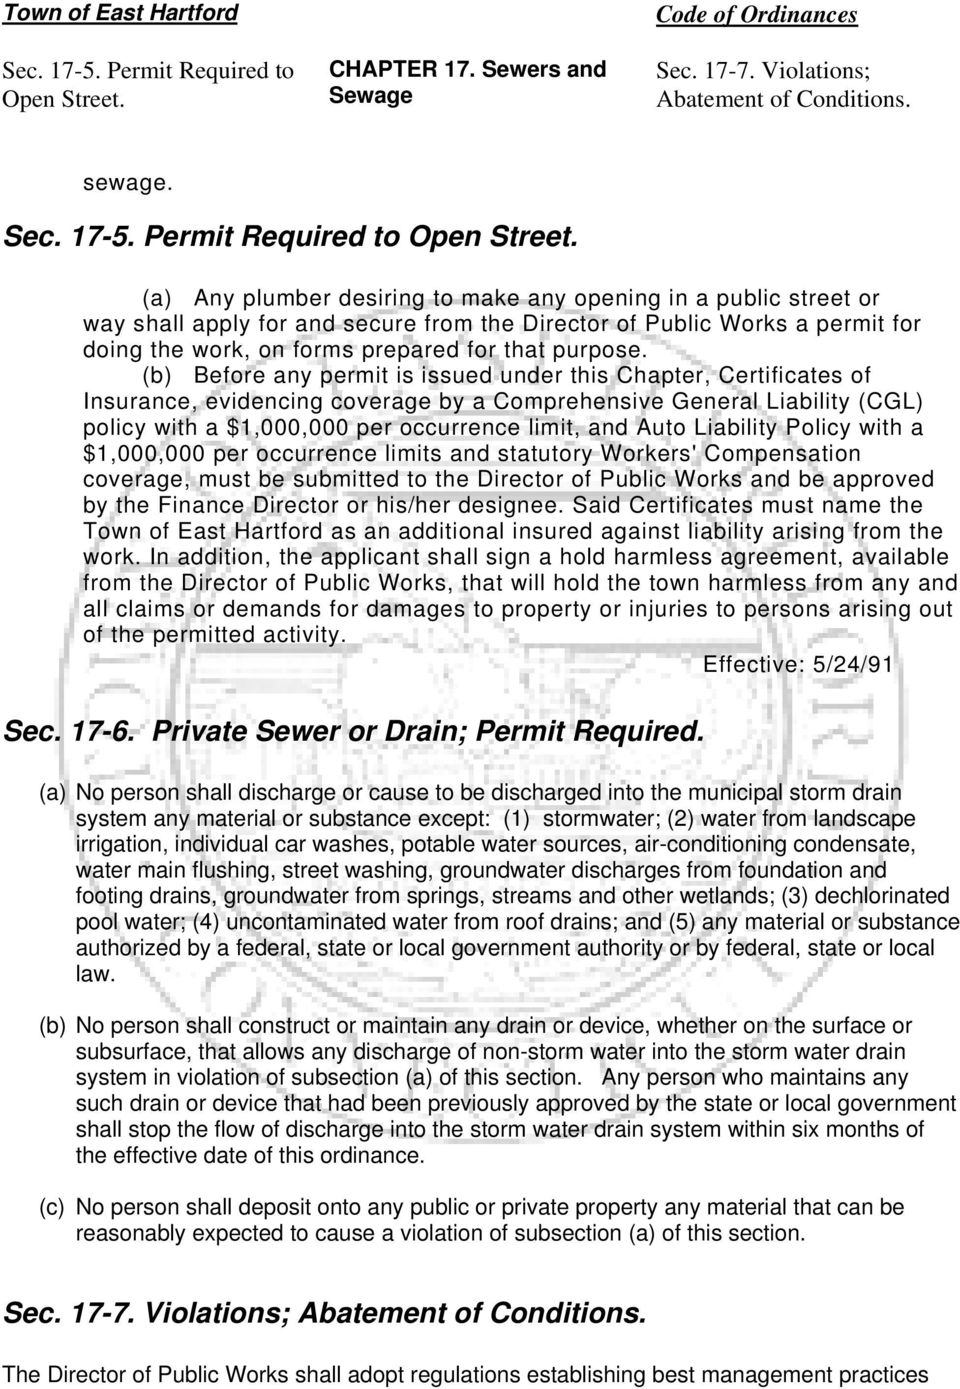 (a) Any plumber desiring to make any opening in a public street or way shall apply for and secure from the Director of Public Works a permit for doing the work, on forms prepared for that purpose.